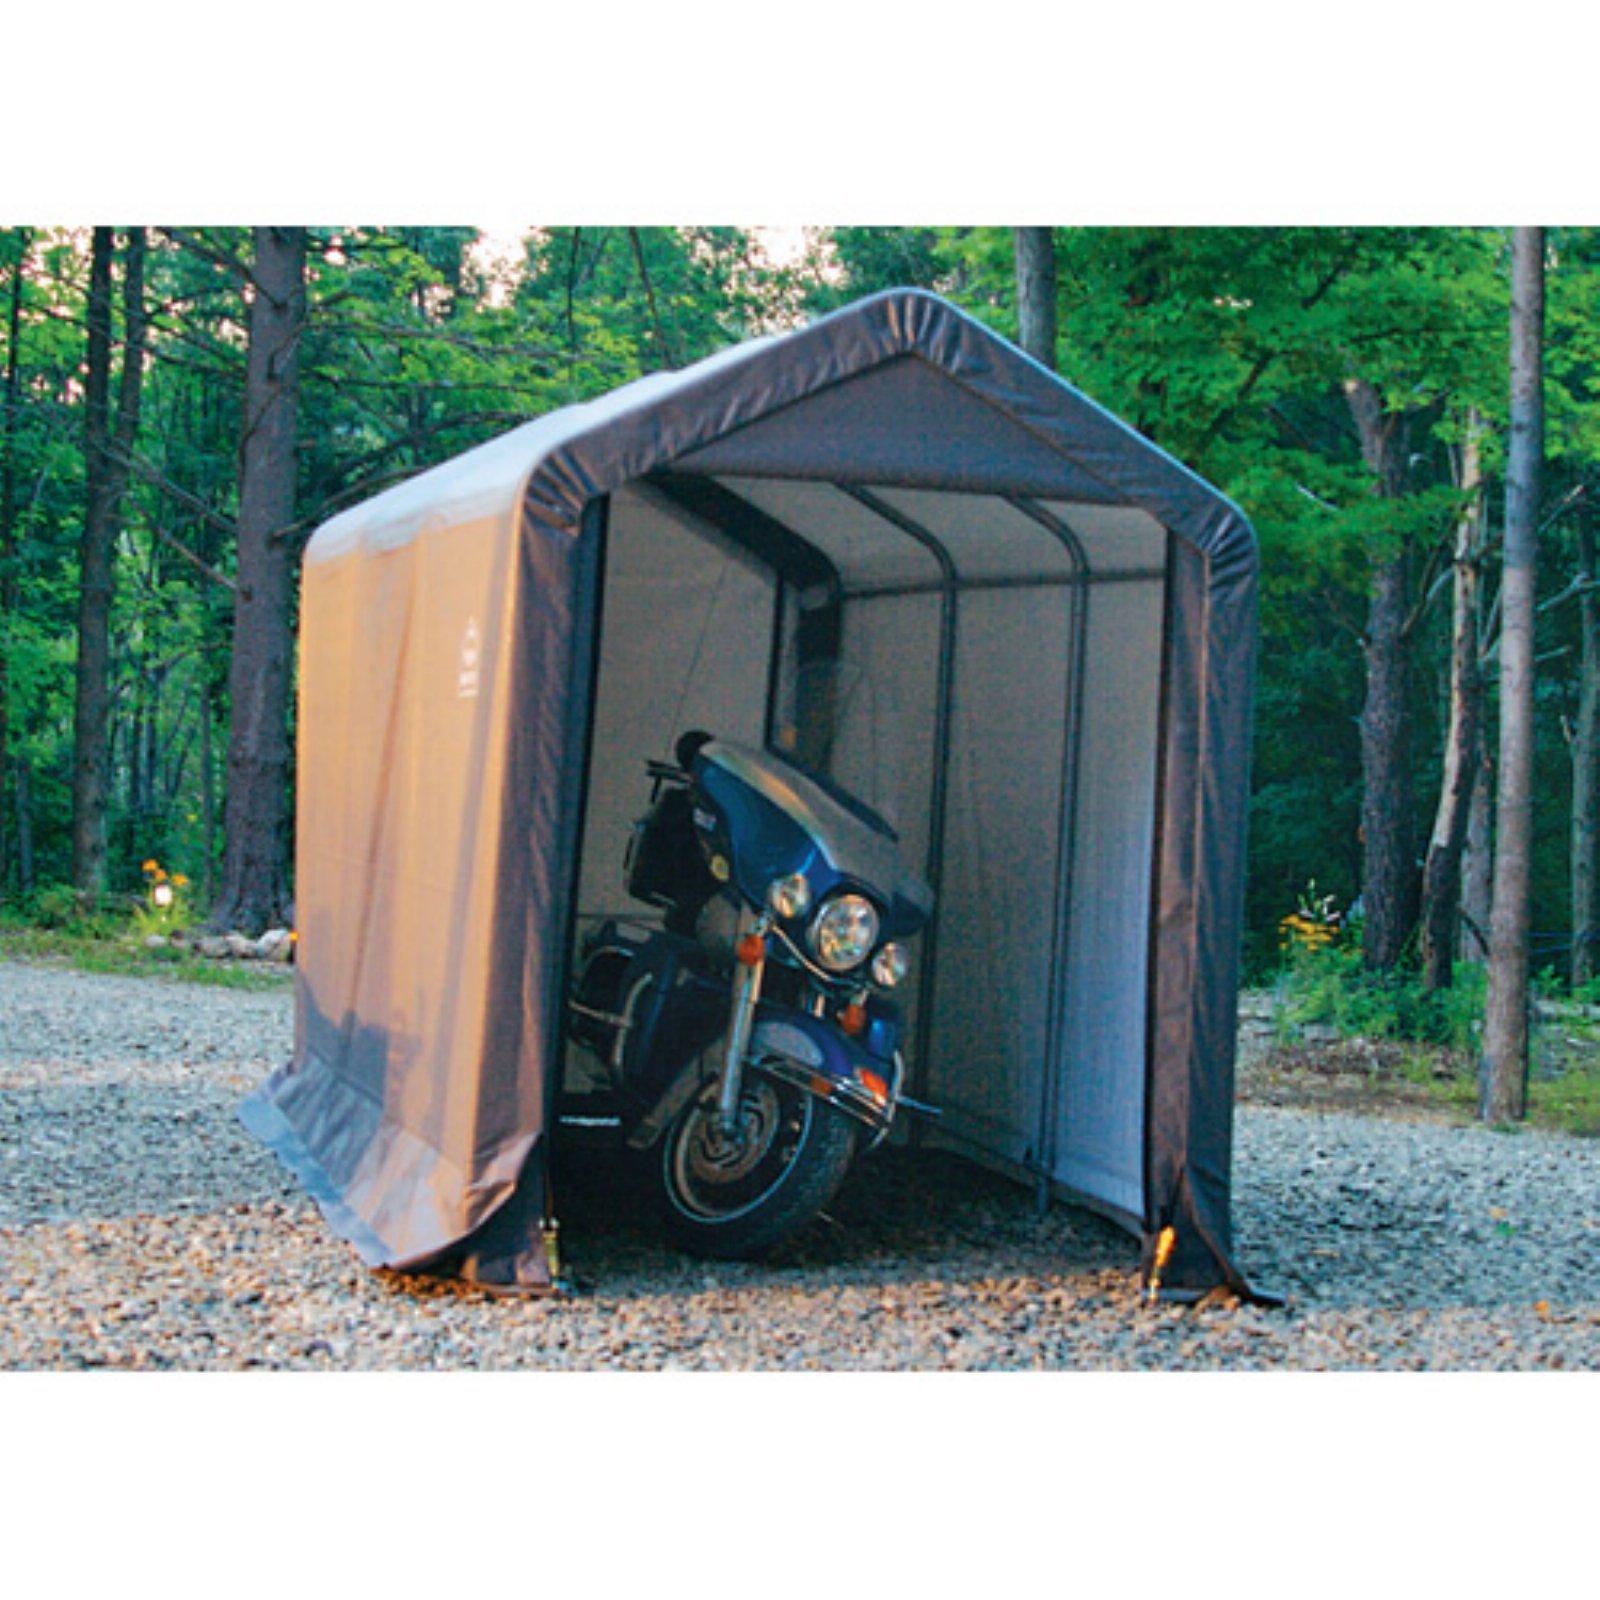 Shed-in-a-Box 6' x 12' x 8' Peak Style Storage Shed, Gray